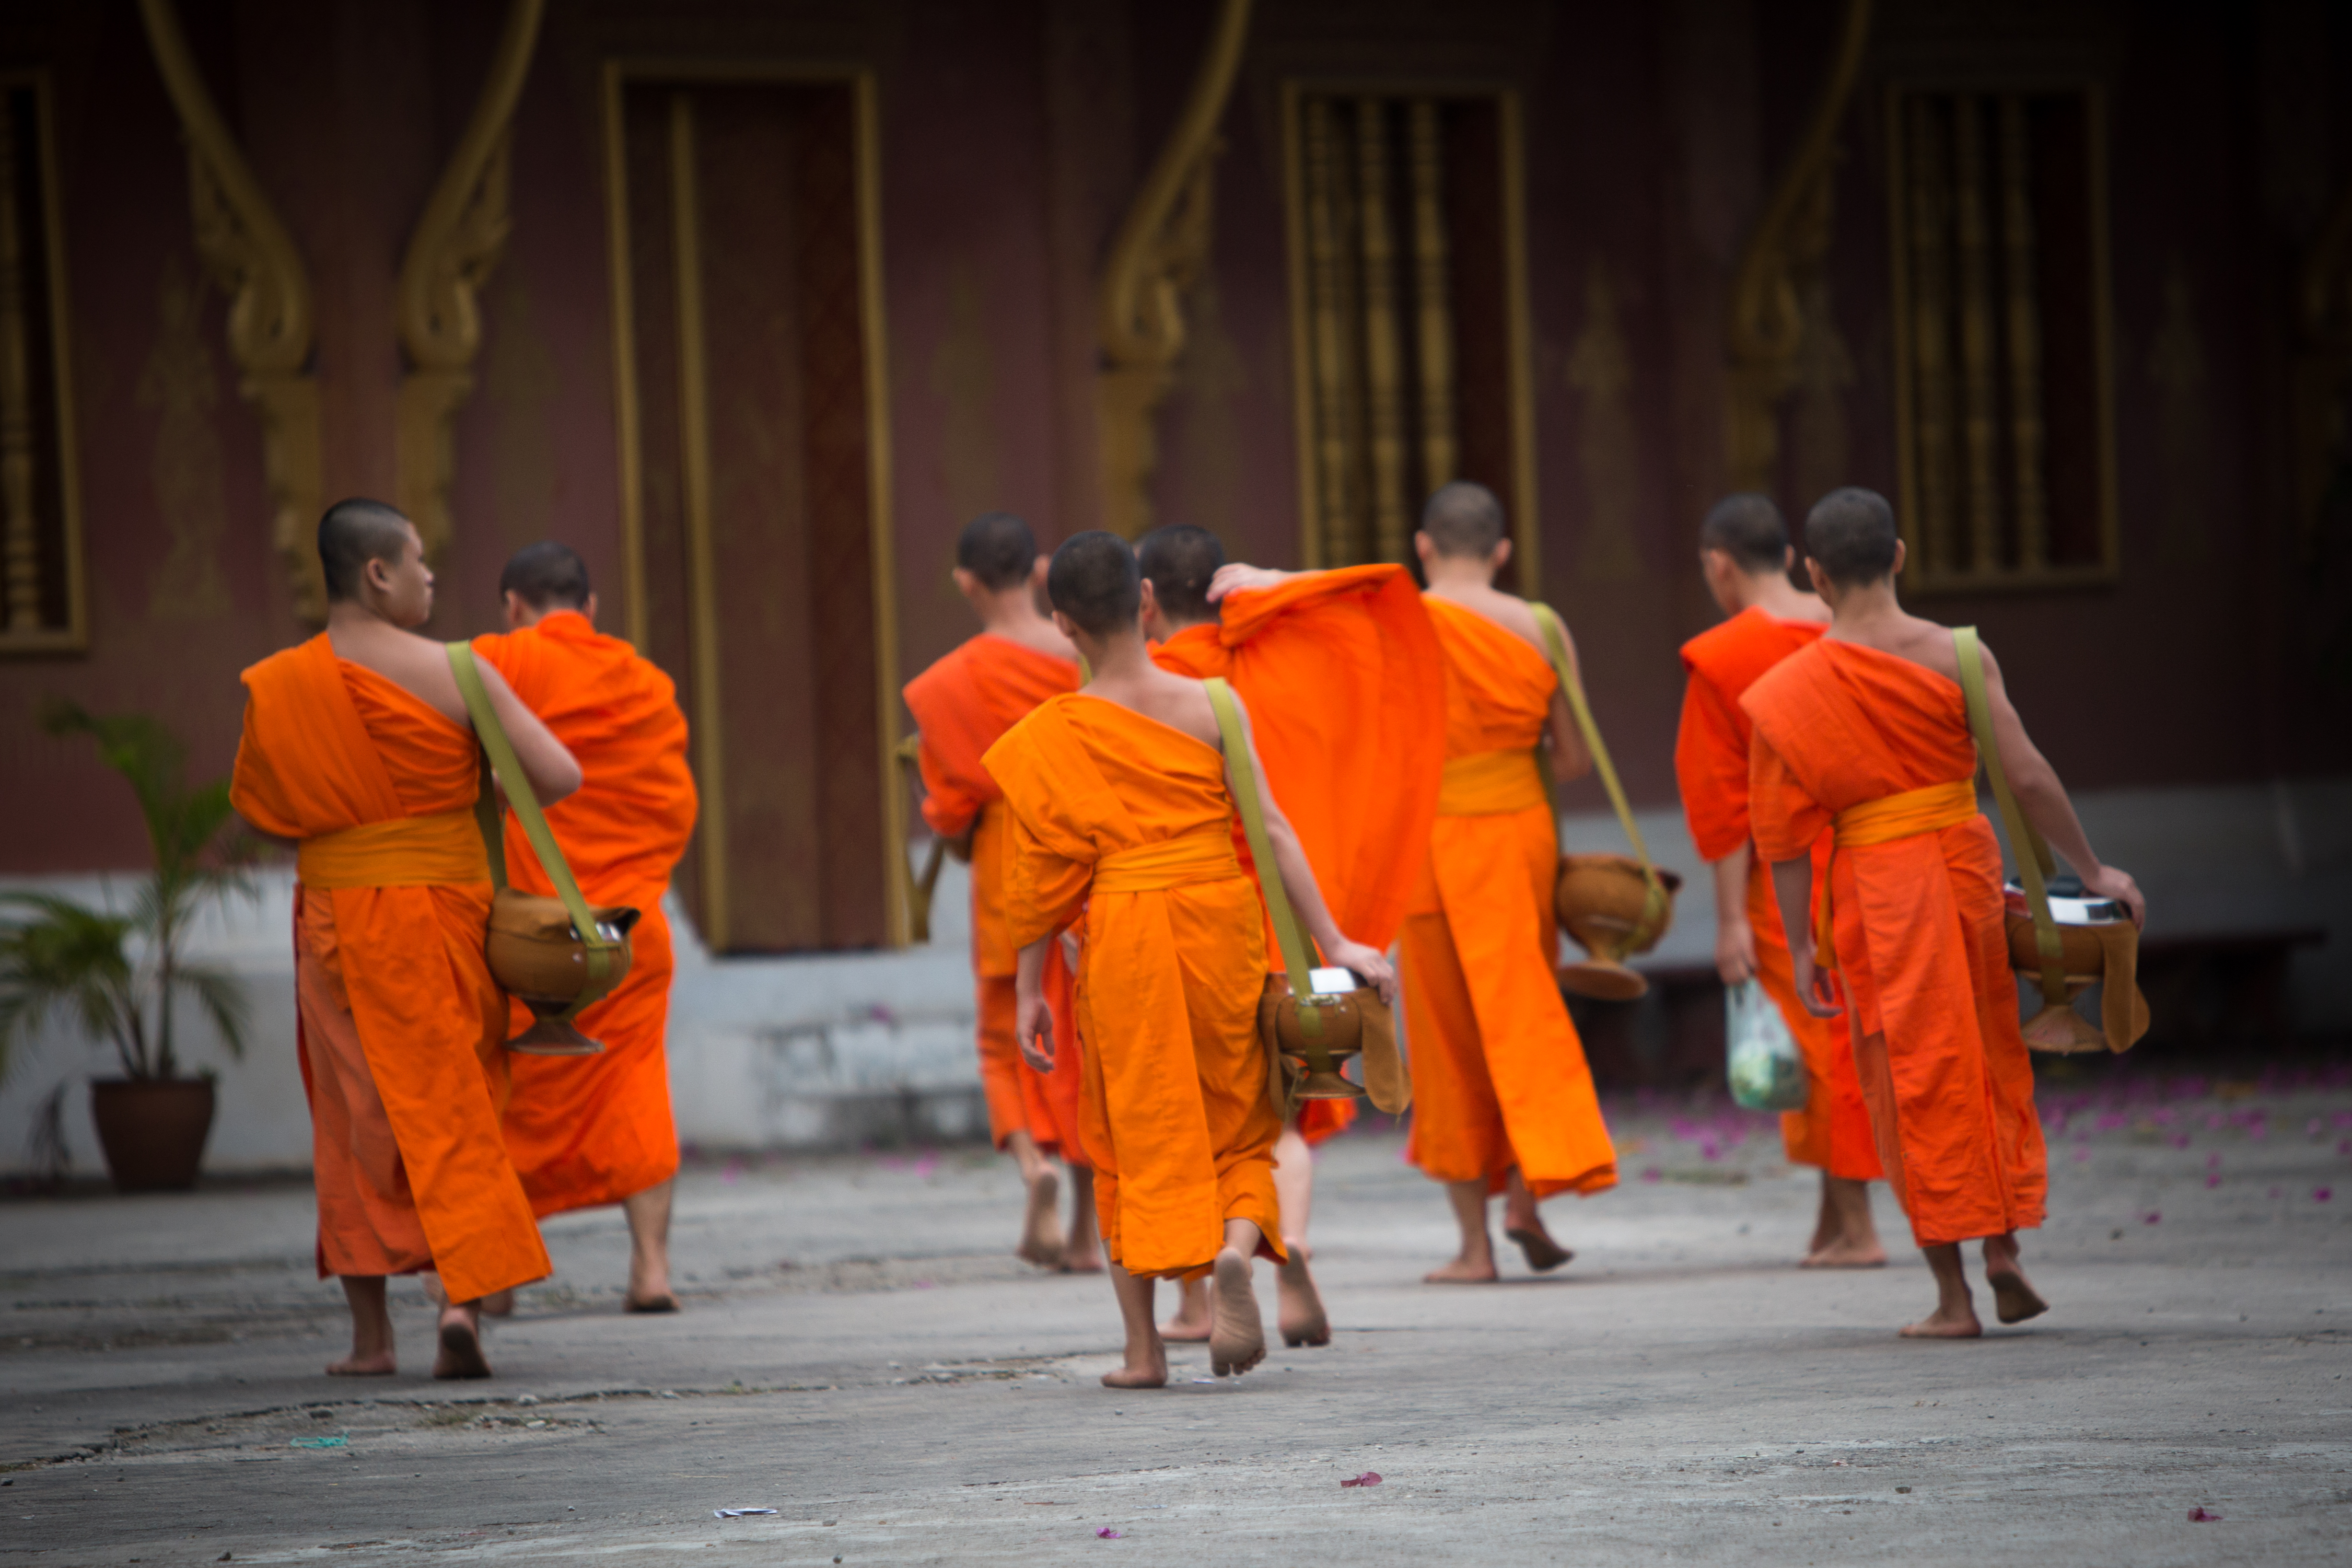 monks returning to temple after alms giving